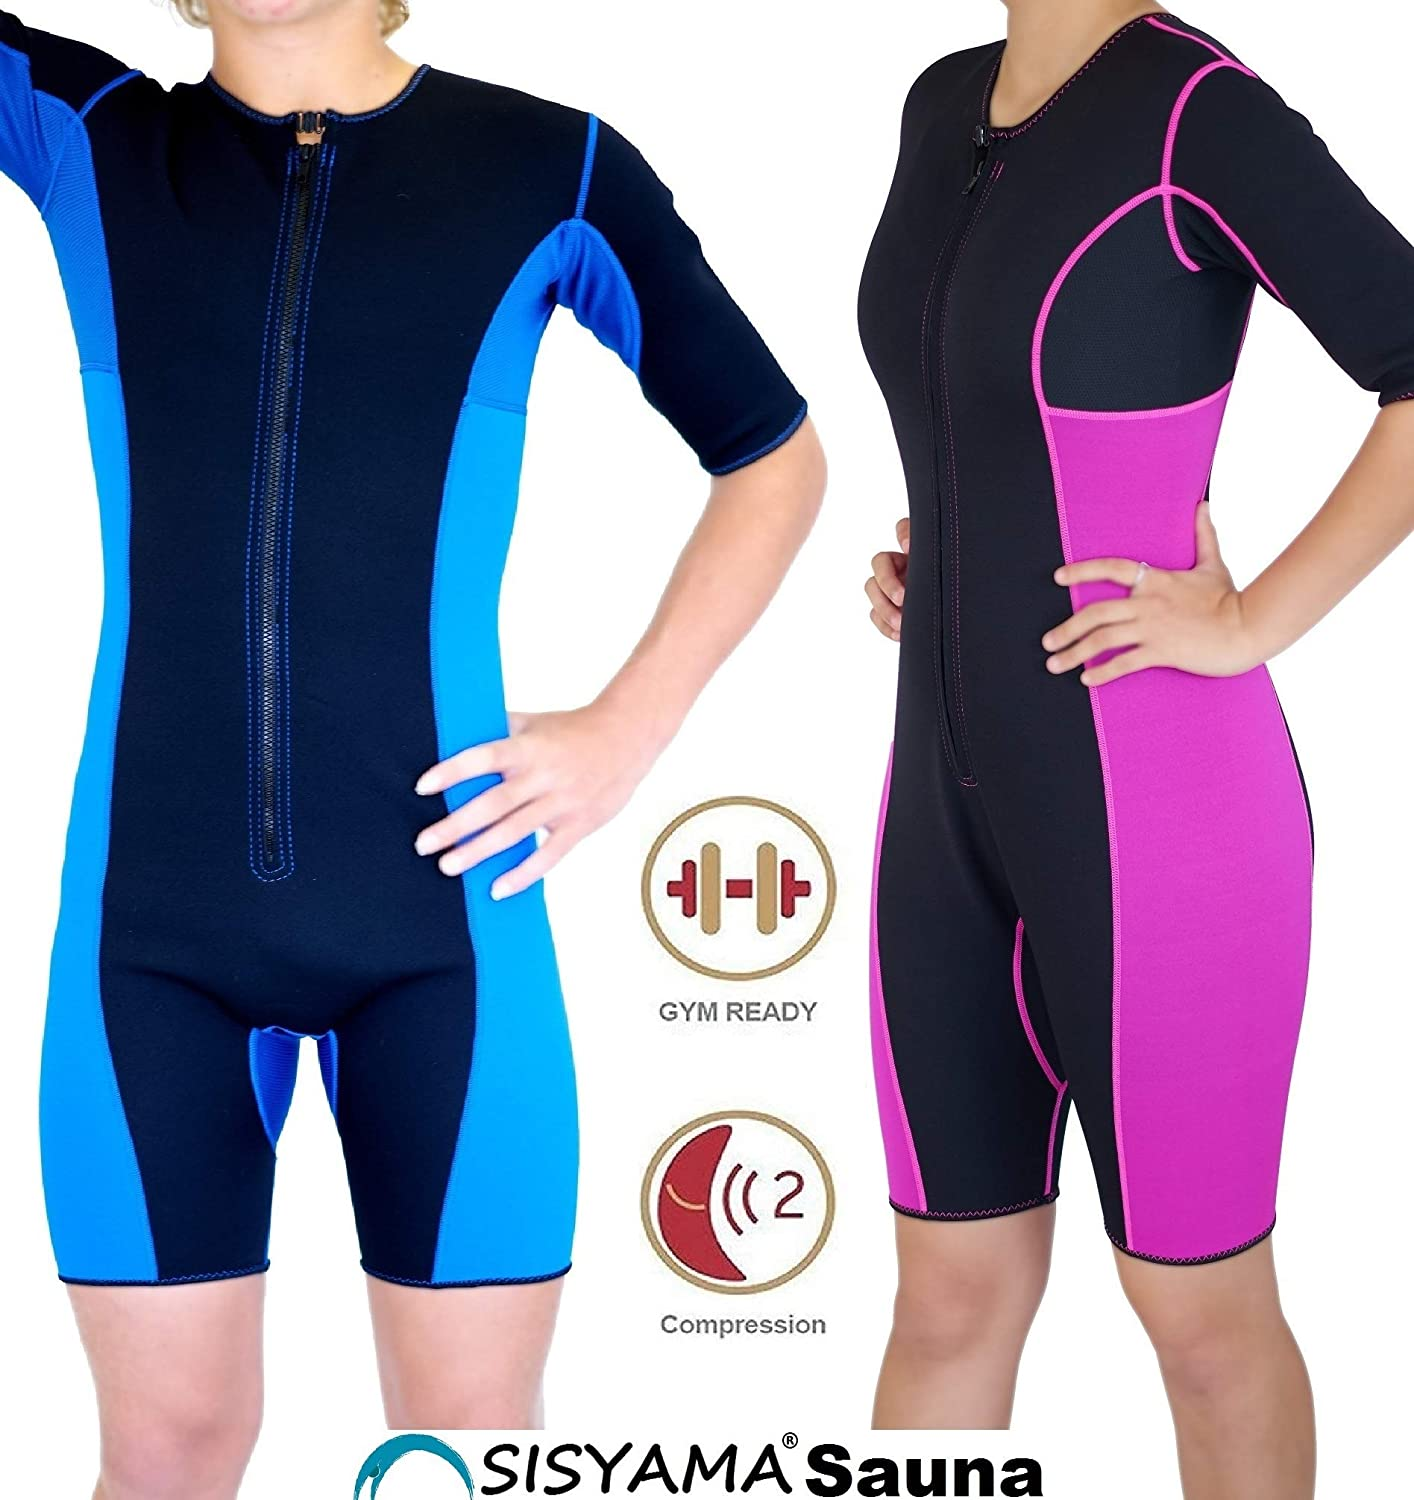 SISYAMA Sauna Sweat Workout Exercise Fitness Weight Loss Compression Hot Slimming Suit Men Women